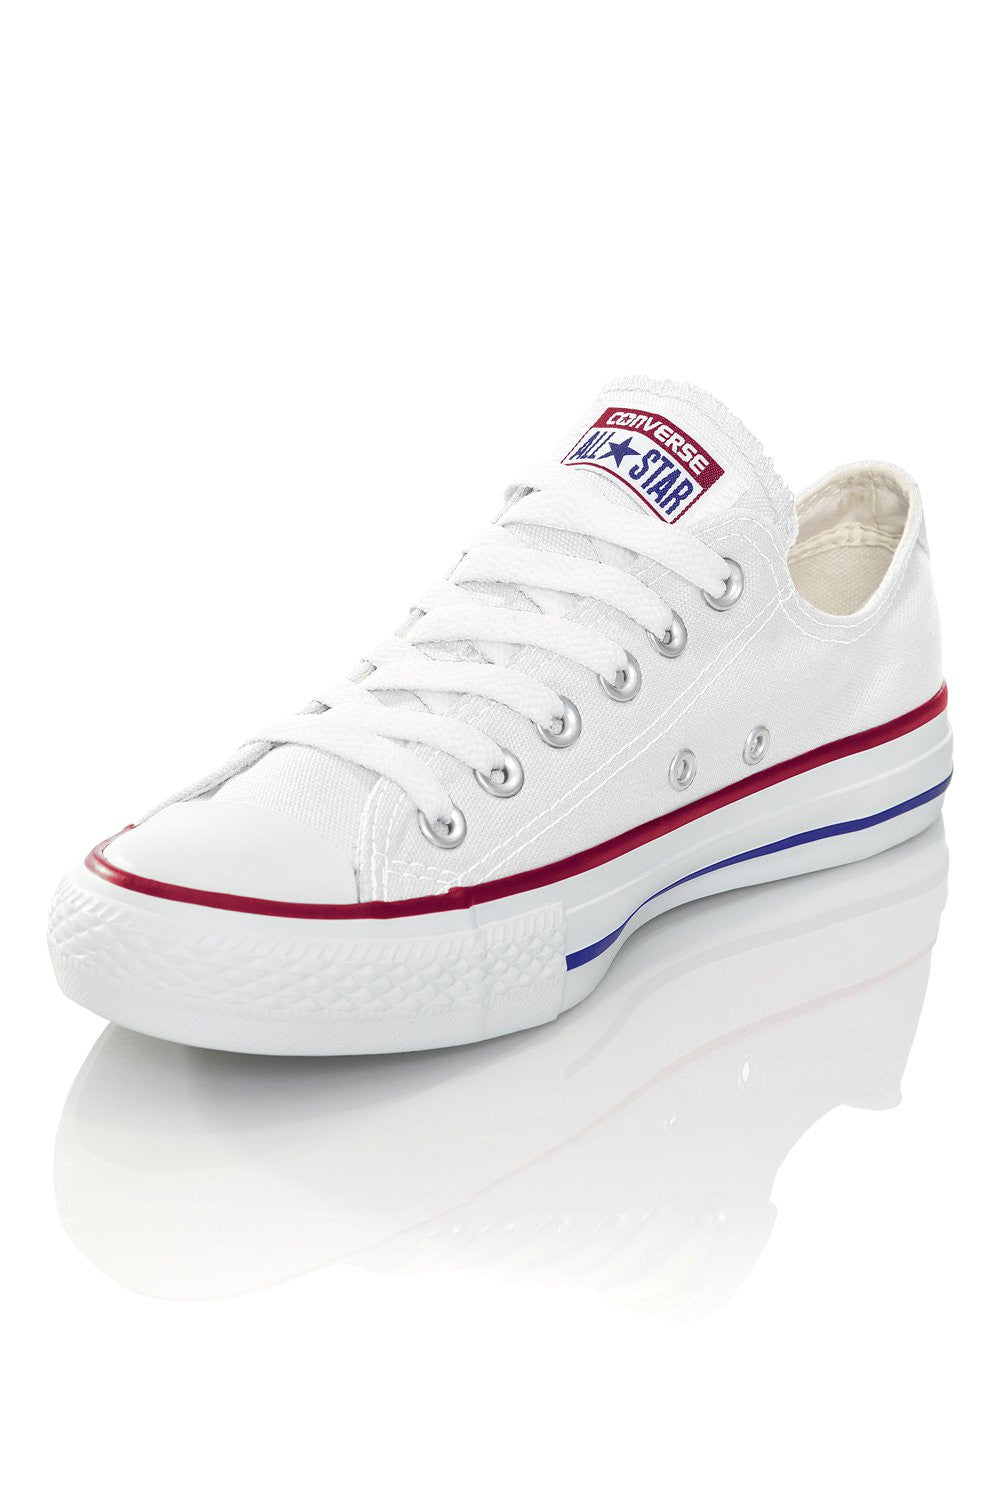 all star converse ox